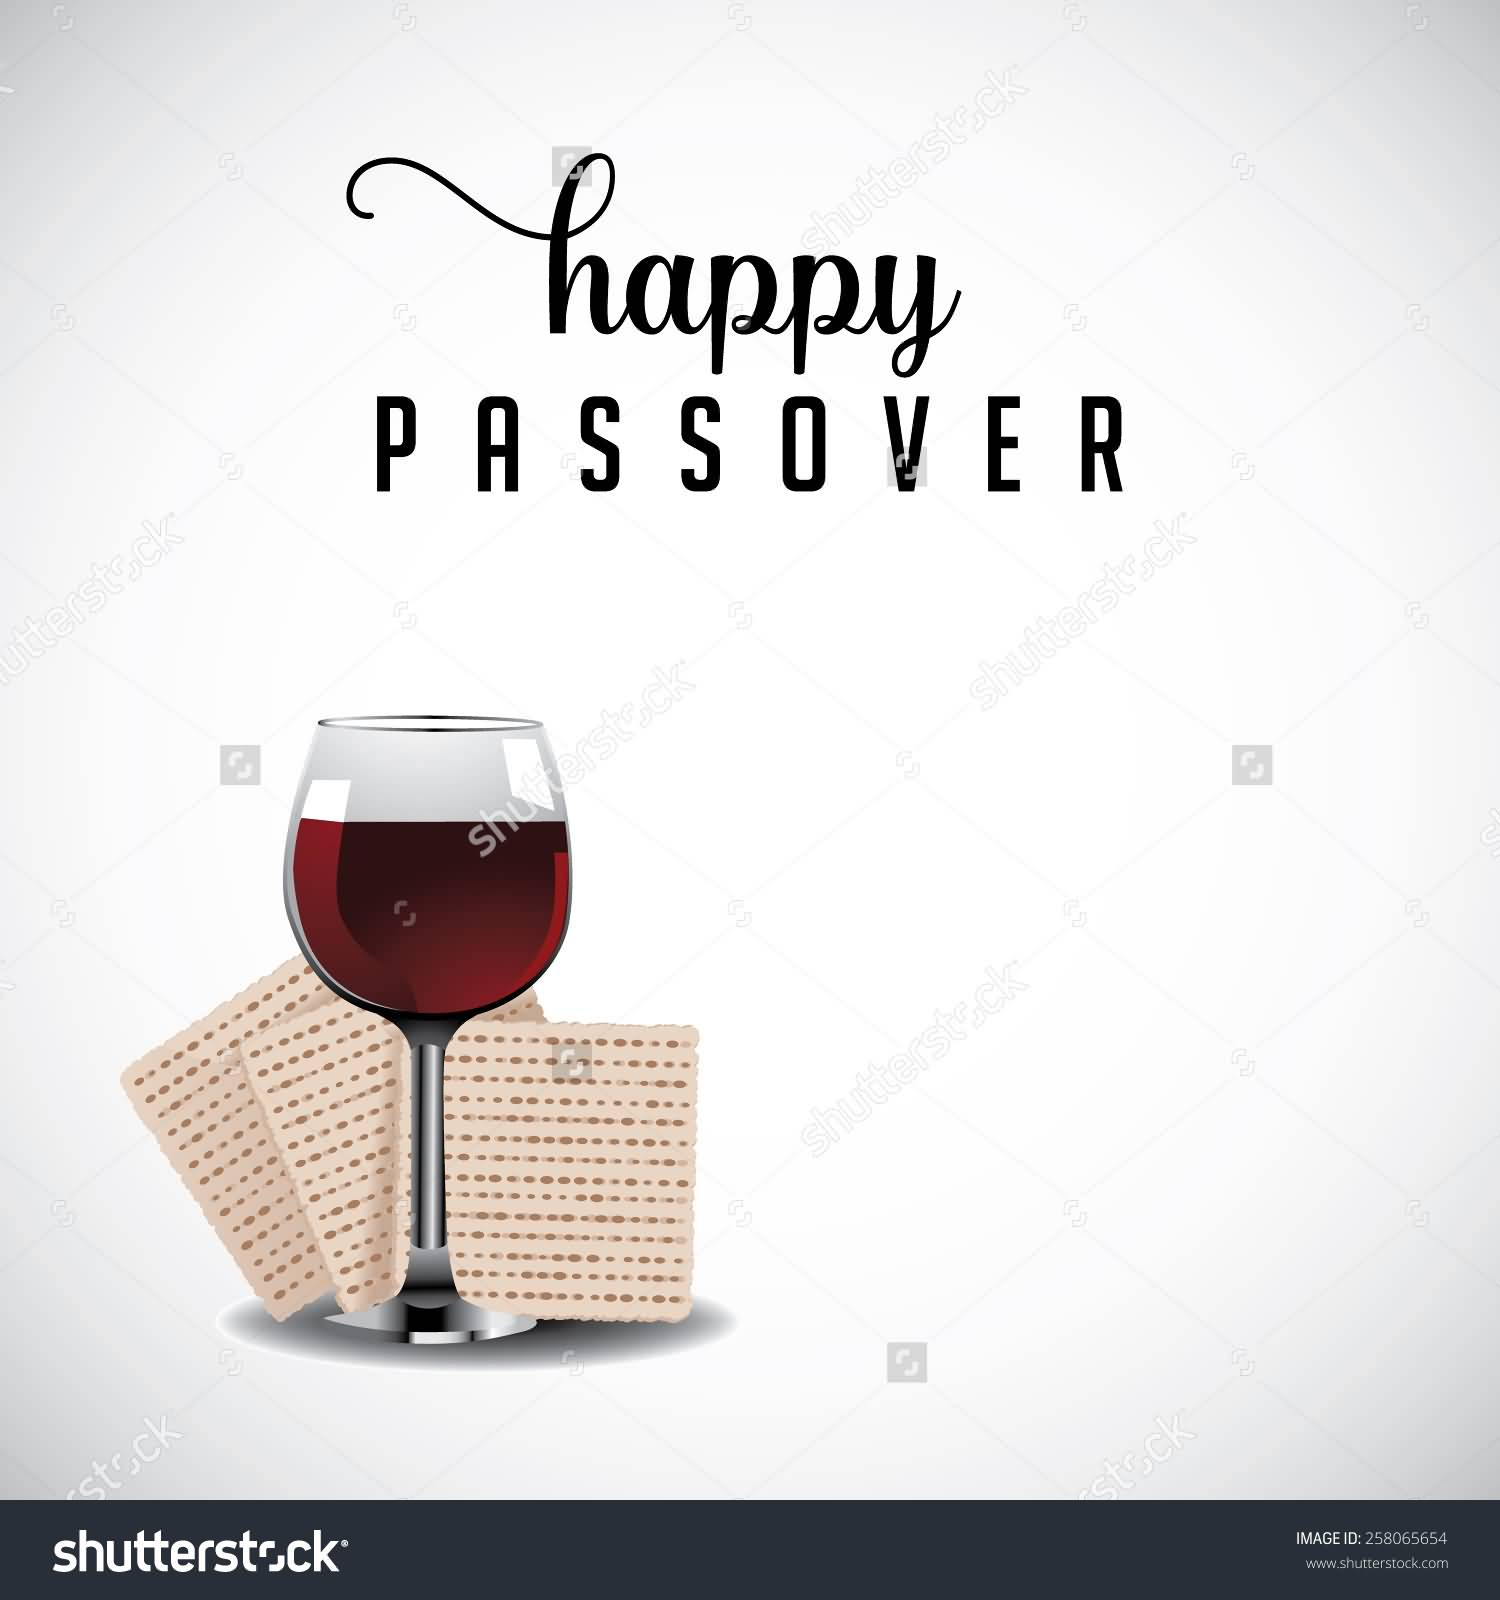 59-Happy Passover Wishes